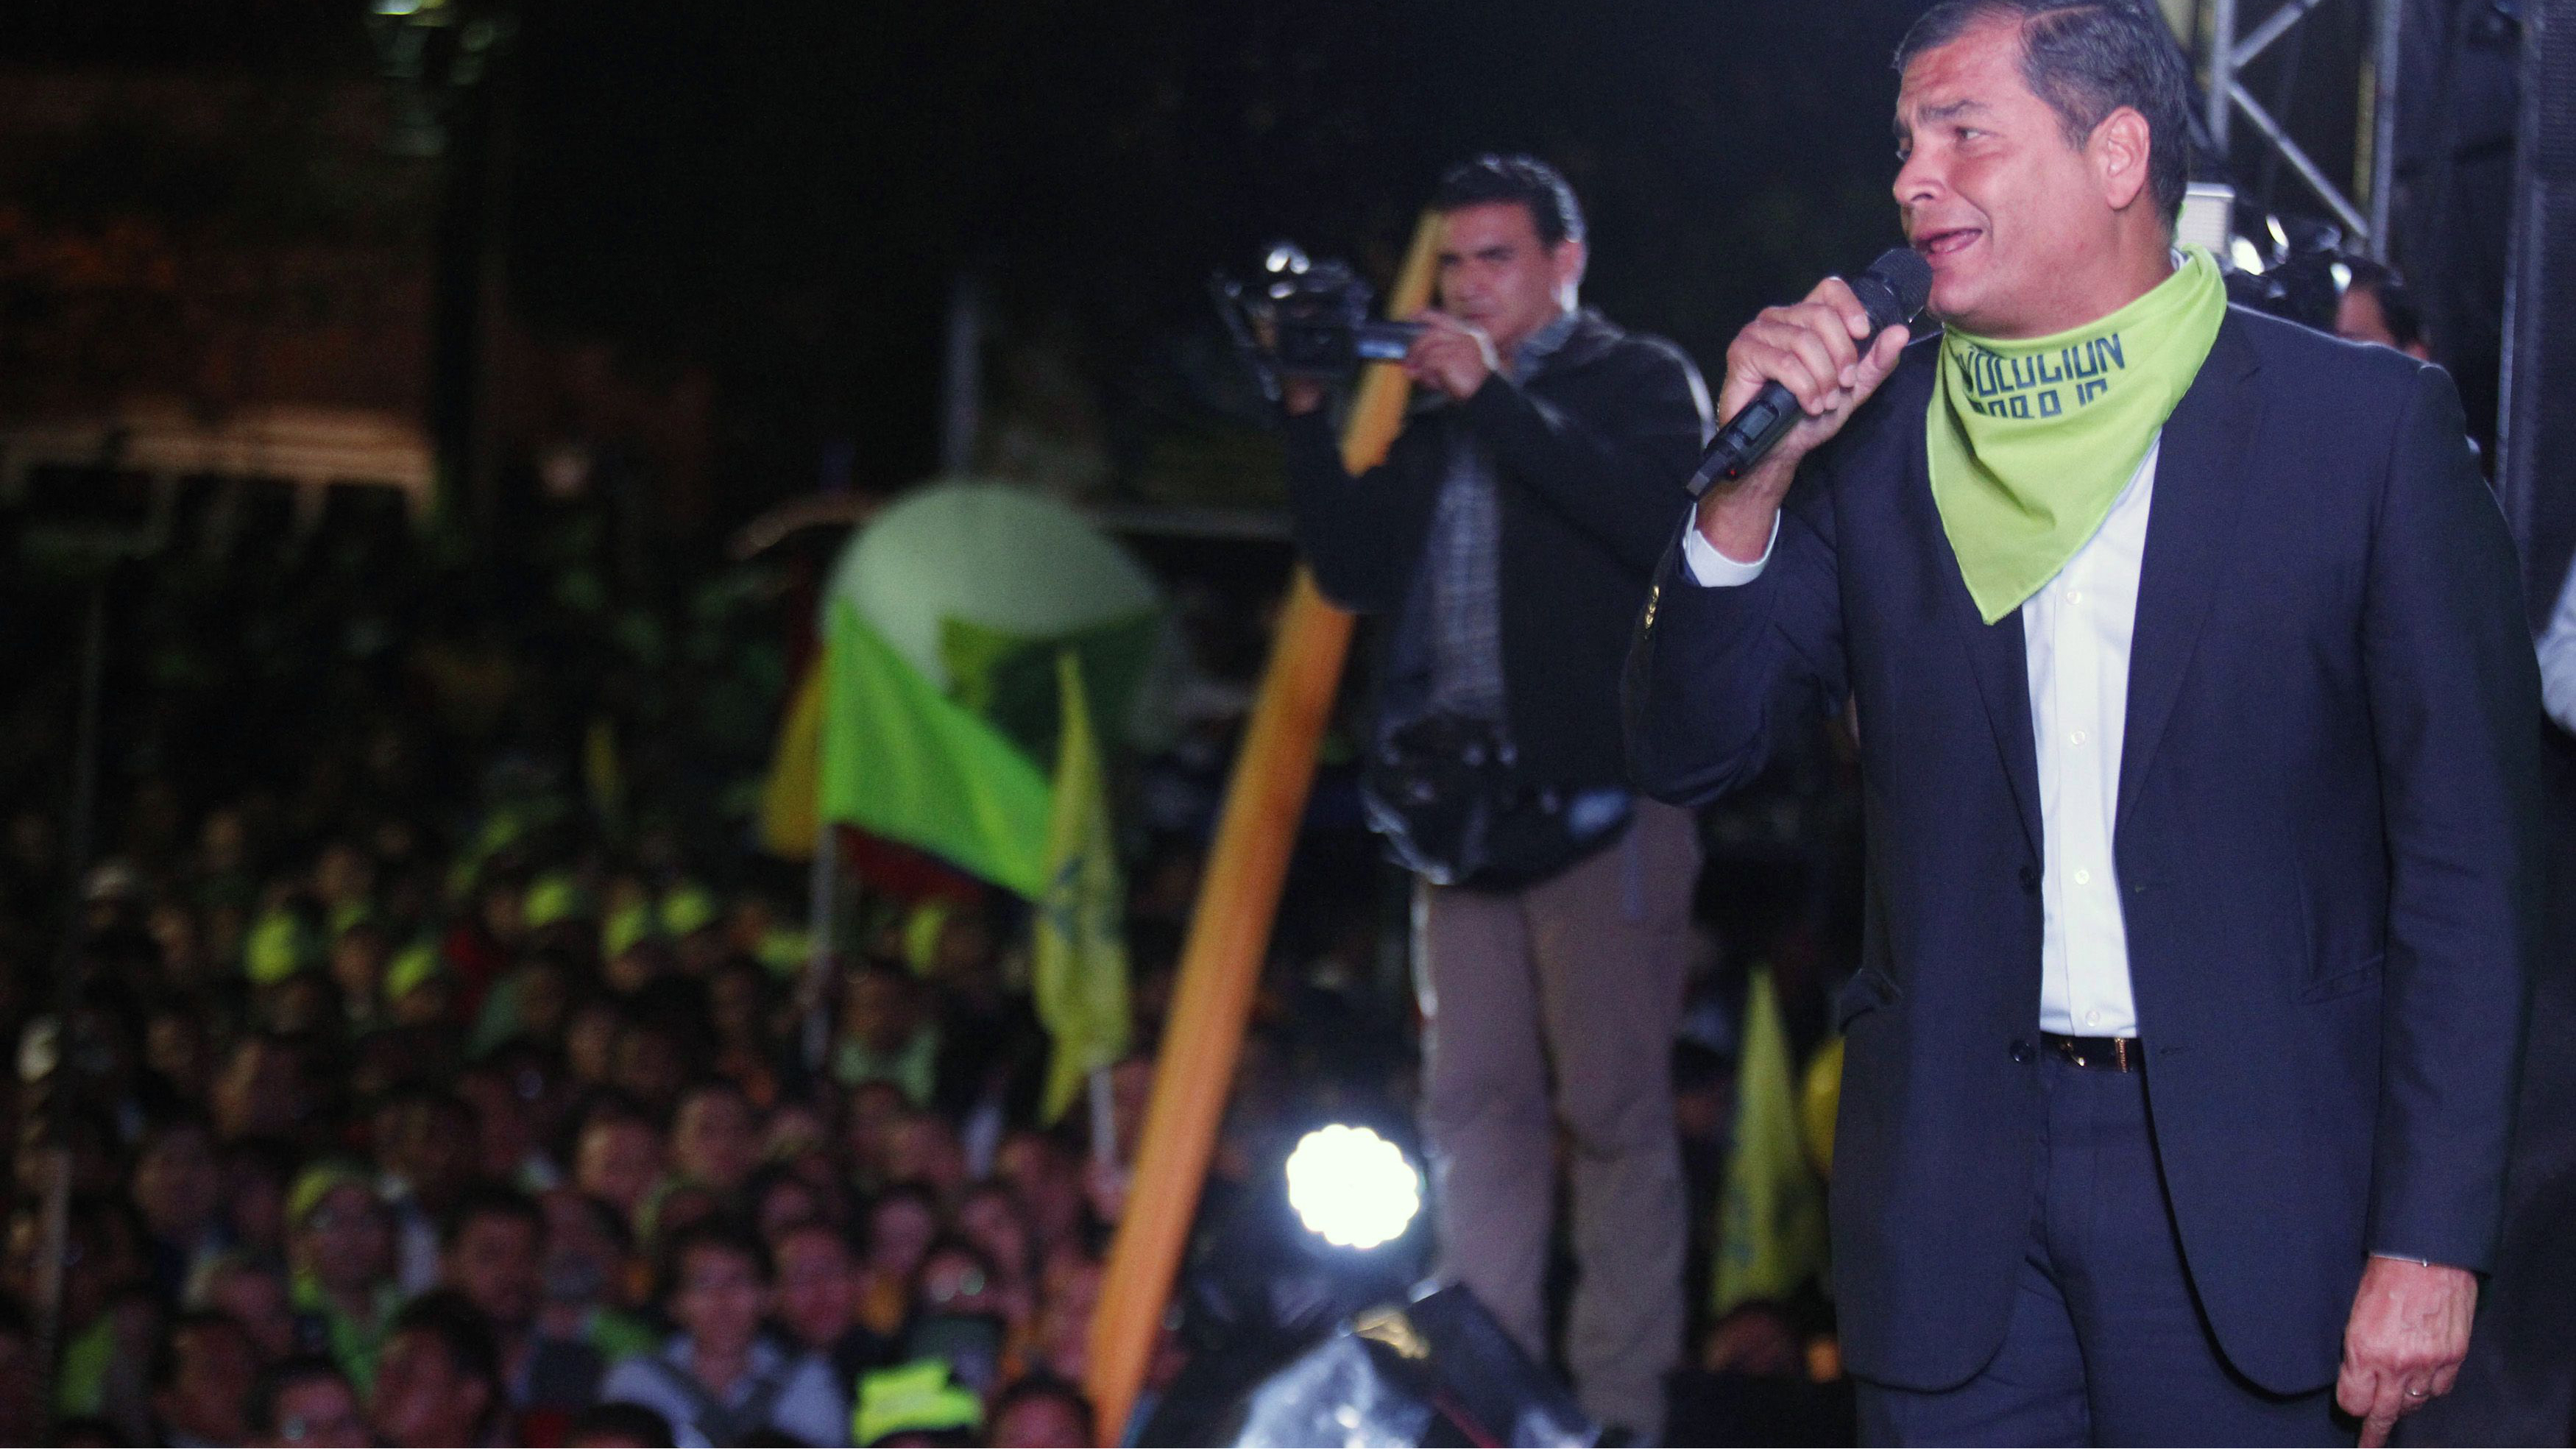 Ecuador's President Rafael Correa addresses supporters during a political meeting in Quito September 17, 2014. REUTERS/Guillermo Granja (ECUADOR - Tags: POLITICS)